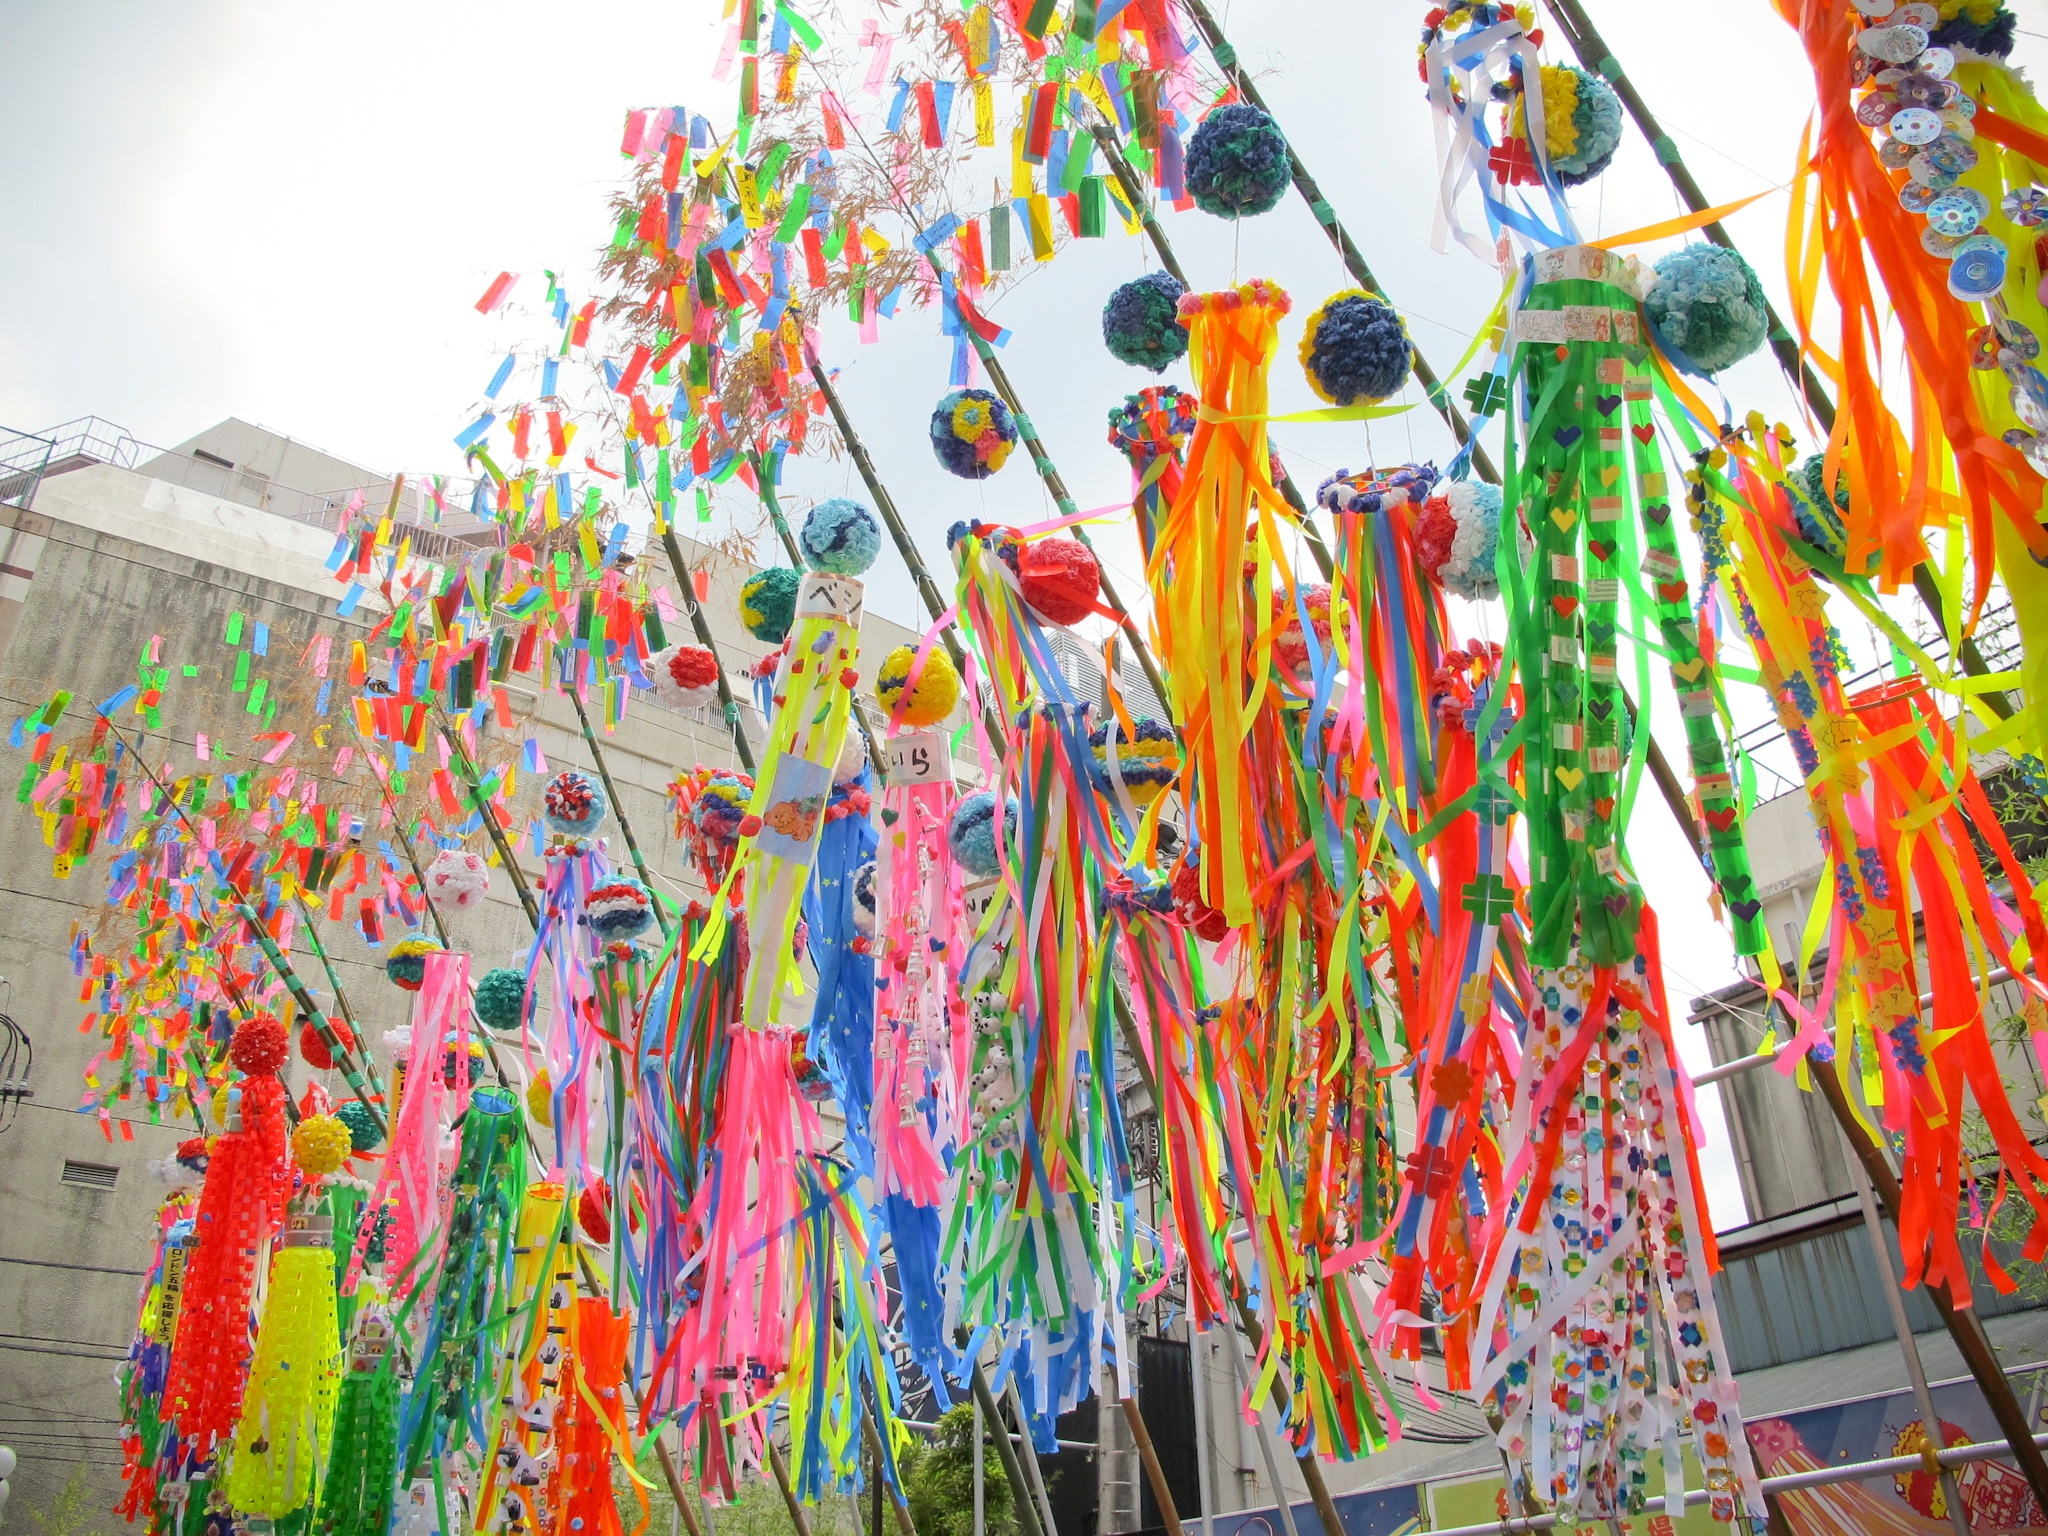 tanabata festival traditions